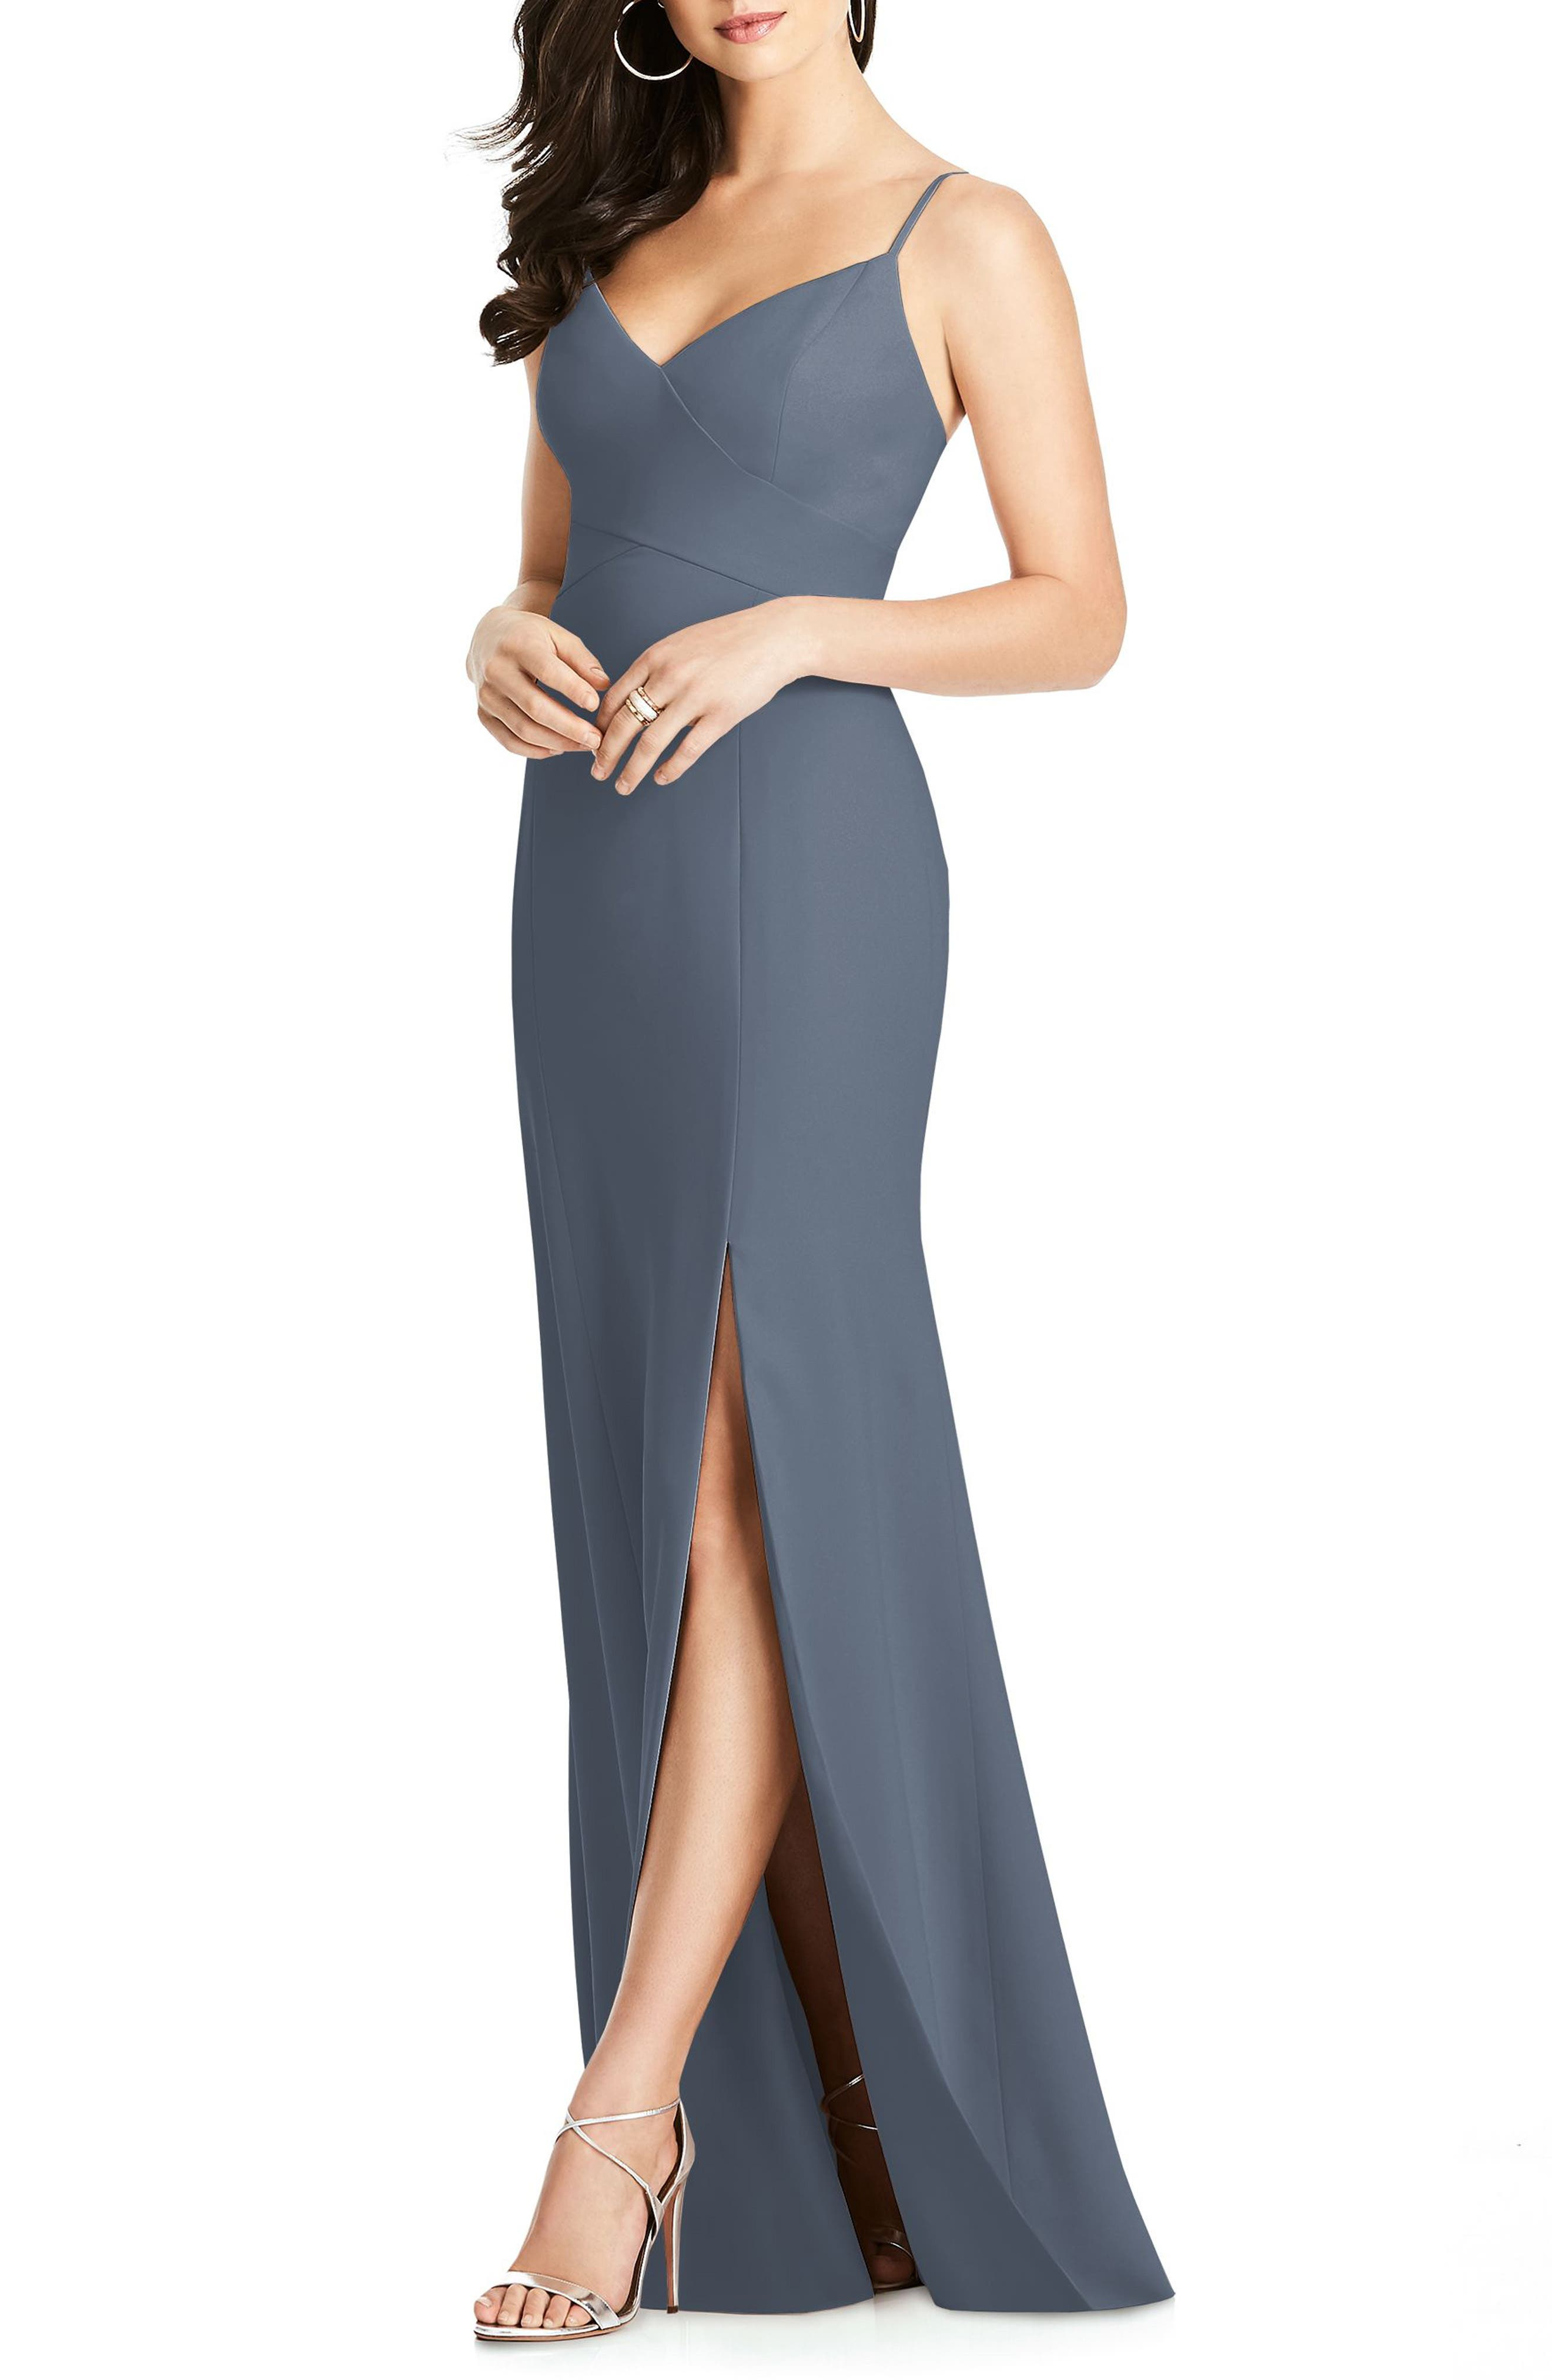 DESSY COLLECTION, Crisscross Seam Crepe Gown, Main thumbnail 1, color, SILVERSTONE